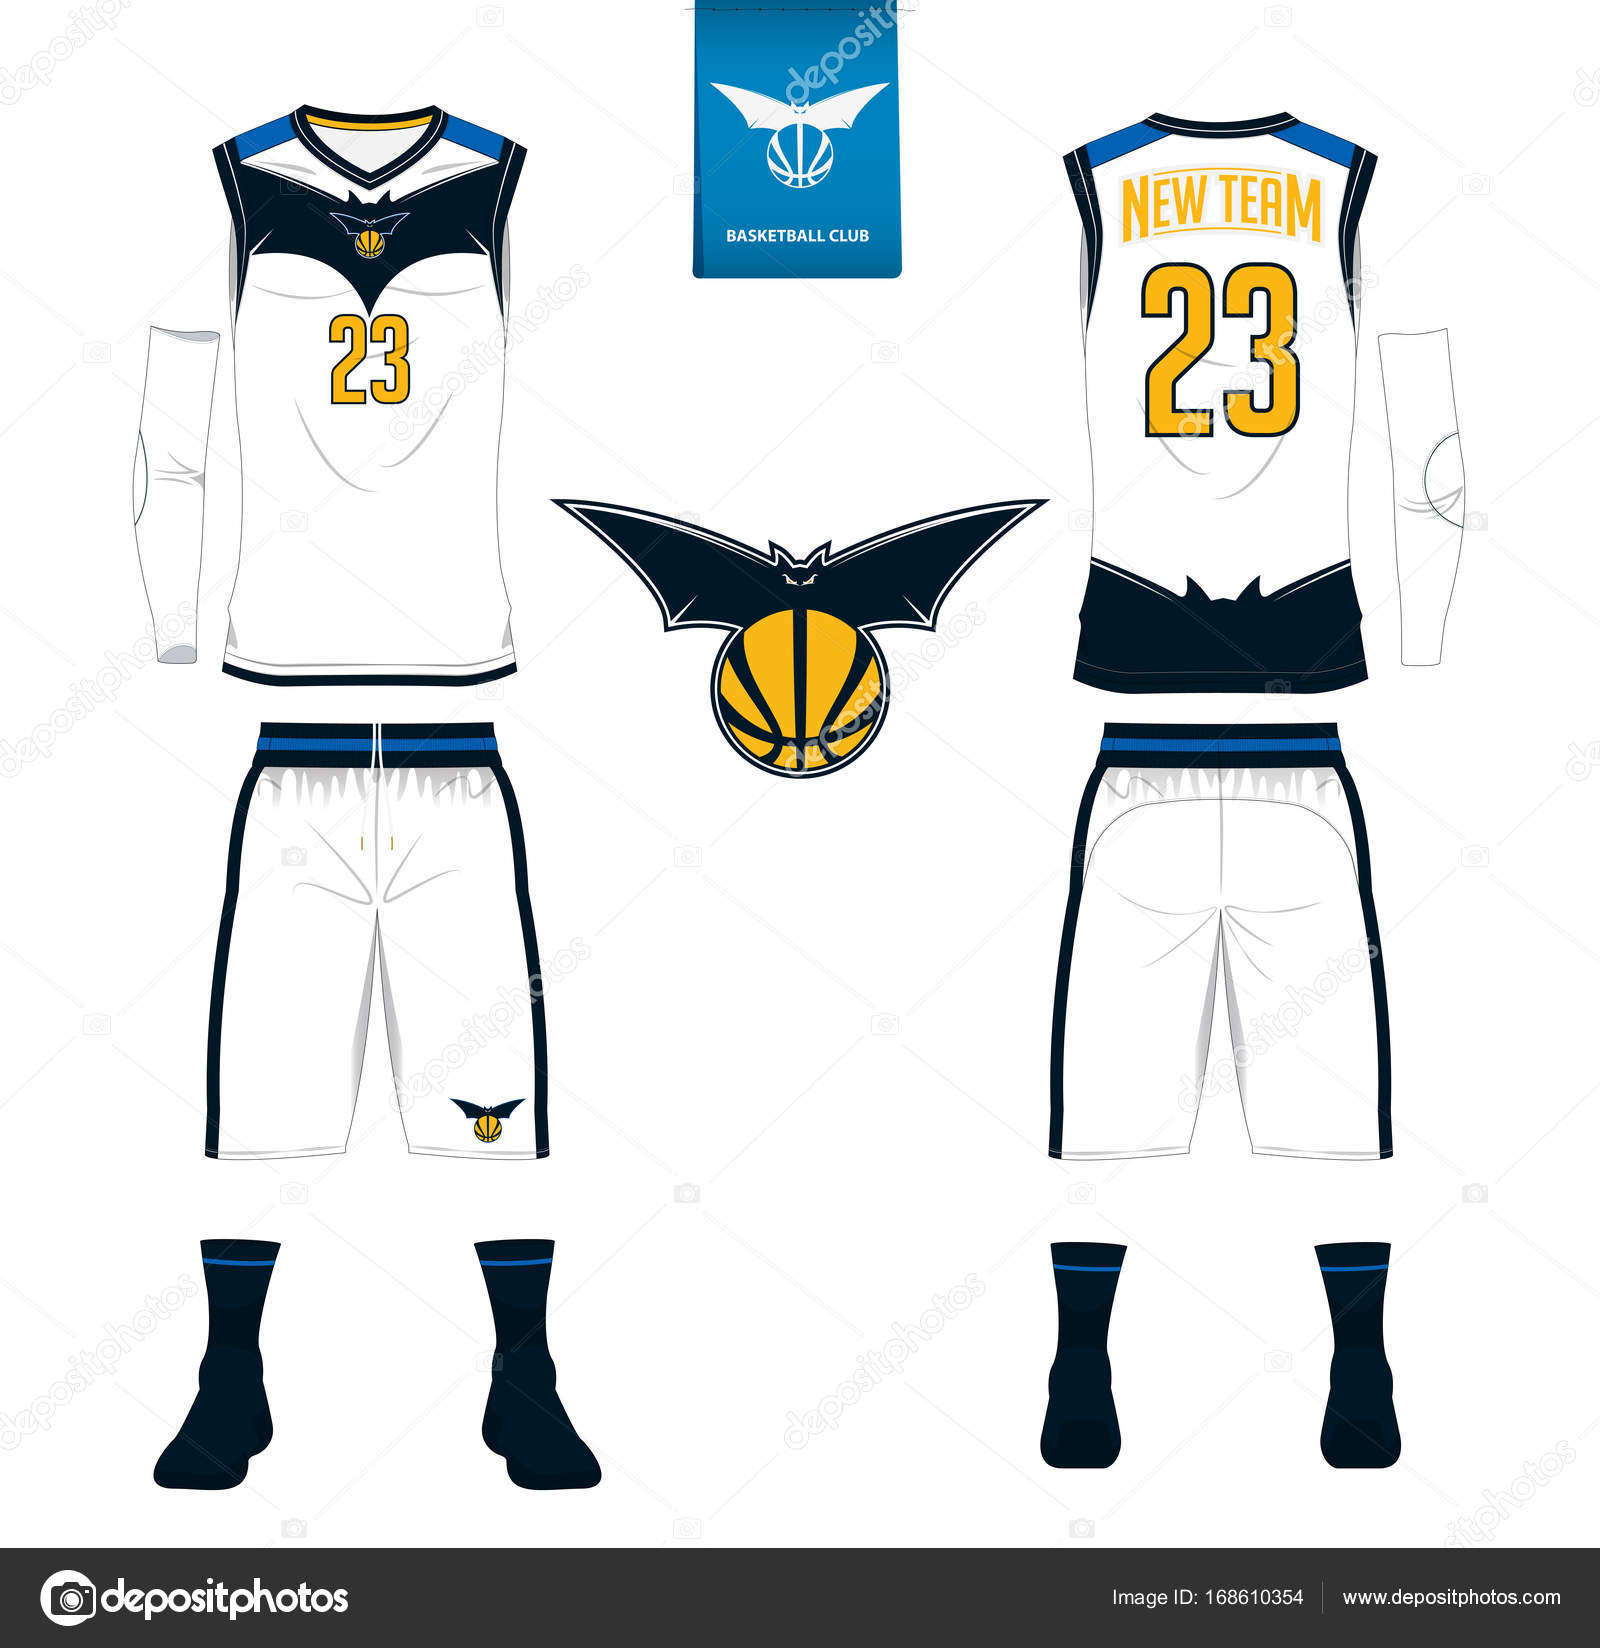 28031d4391b Basketball jersey, shorts, socks template for basketball club. Front and  back view sport uniform. Tank top t-shirt mock up with basketball flat logo  design ...